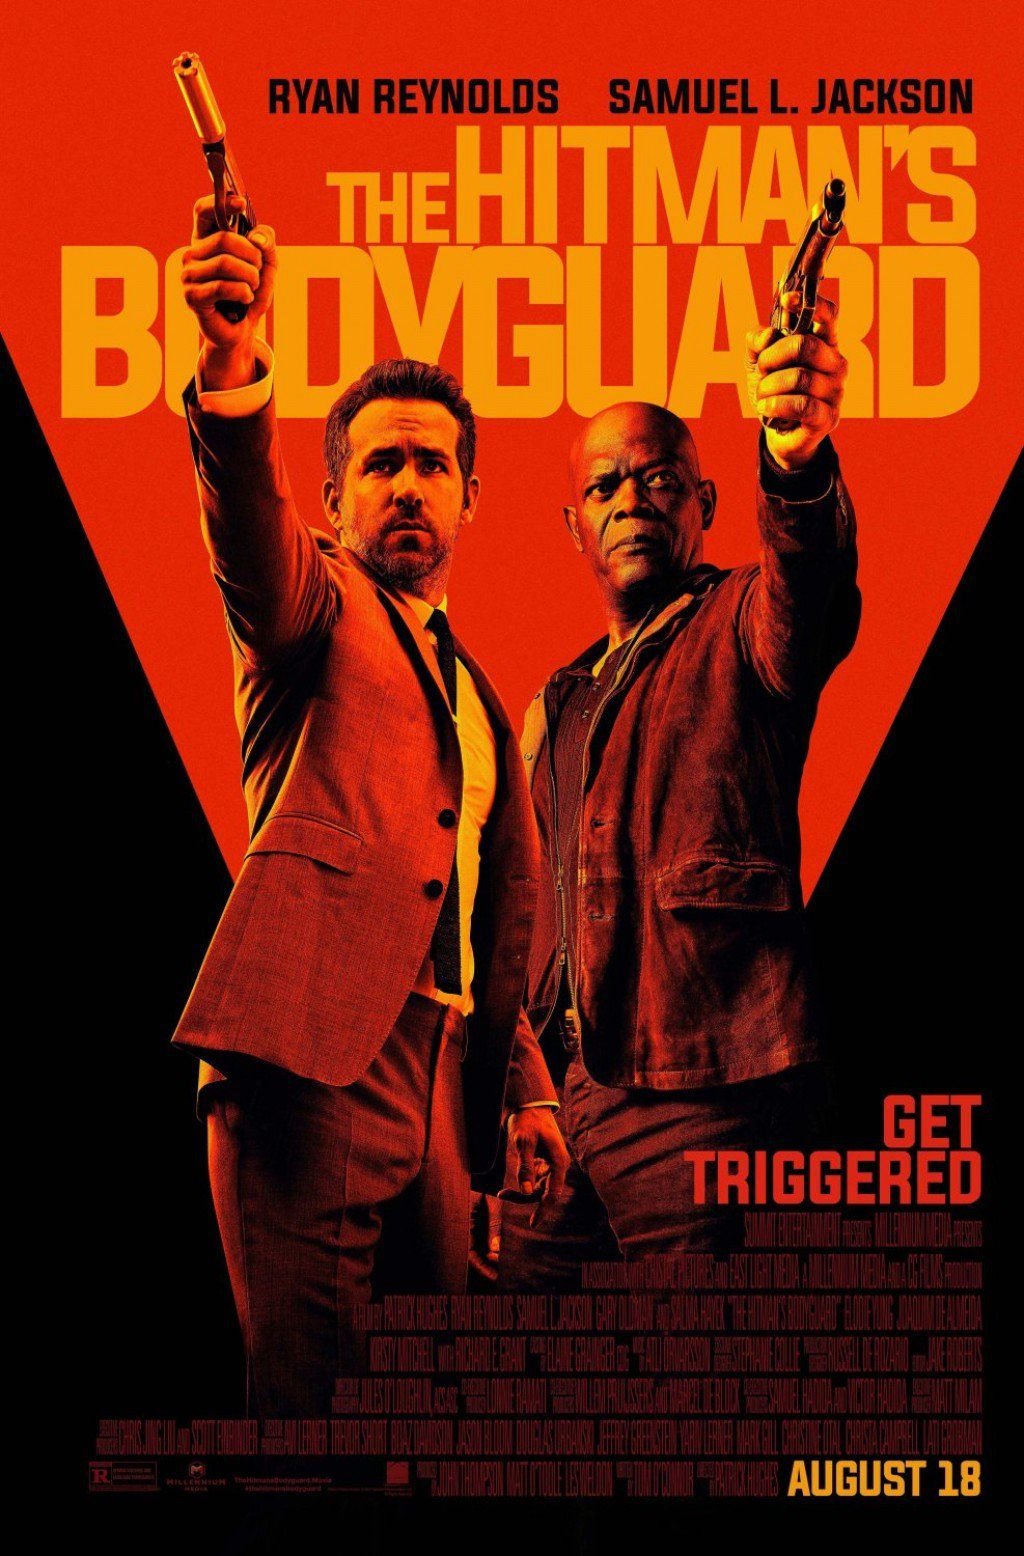 The Hitman's Bodyguard (2017) Review The bodyguard movie